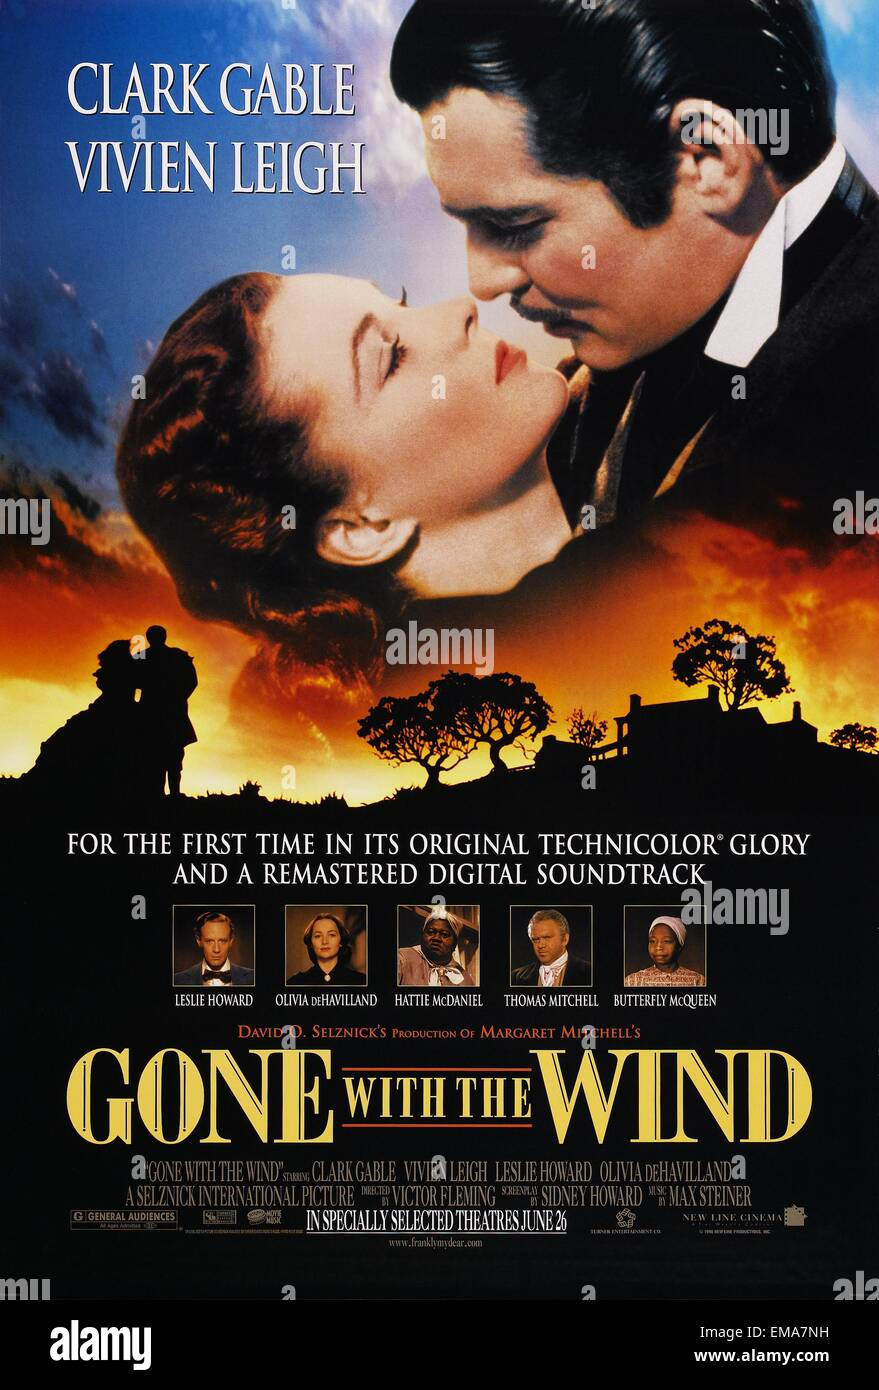 gone with the wind 1939 photos gone with the wind 1939 images alamy. Black Bedroom Furniture Sets. Home Design Ideas